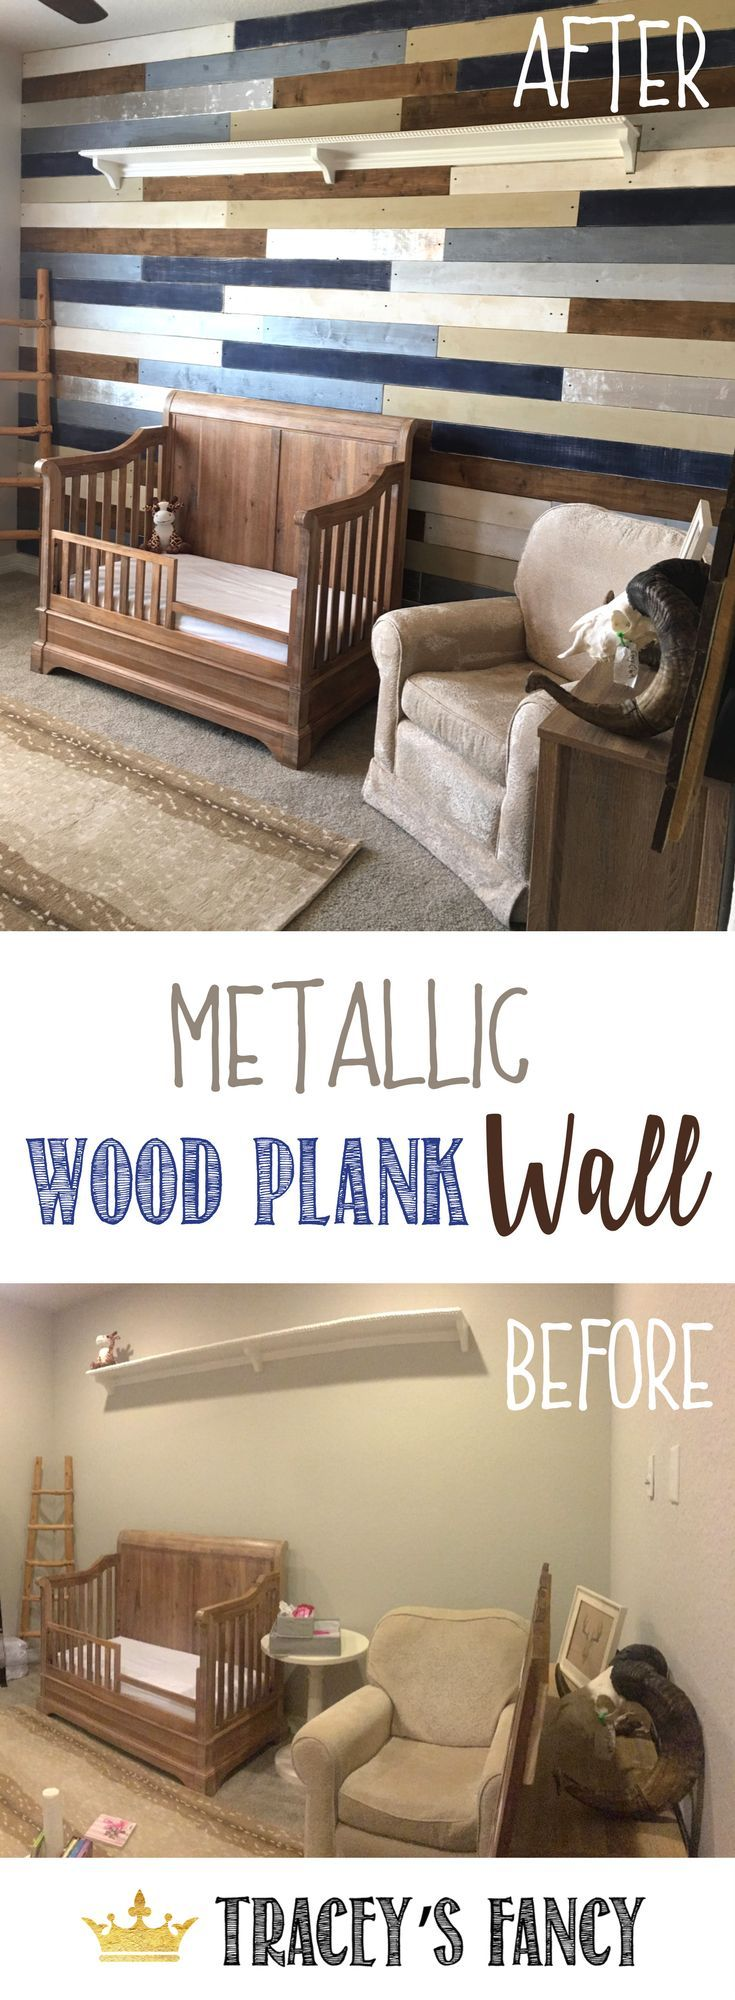 Turn a drab wall into a stunning feature wall with a Metallic Wood Plank Wall by Tracey's Fancy. Great Boys Nursery Decorating Ideas. You can customize the colors to match your nursery decor. Add texture and visual interest with a shiplap focal wall. How to Decorate a Nursery | Boys Room Ideas | Boys Bedroom | Baby Boy Decor